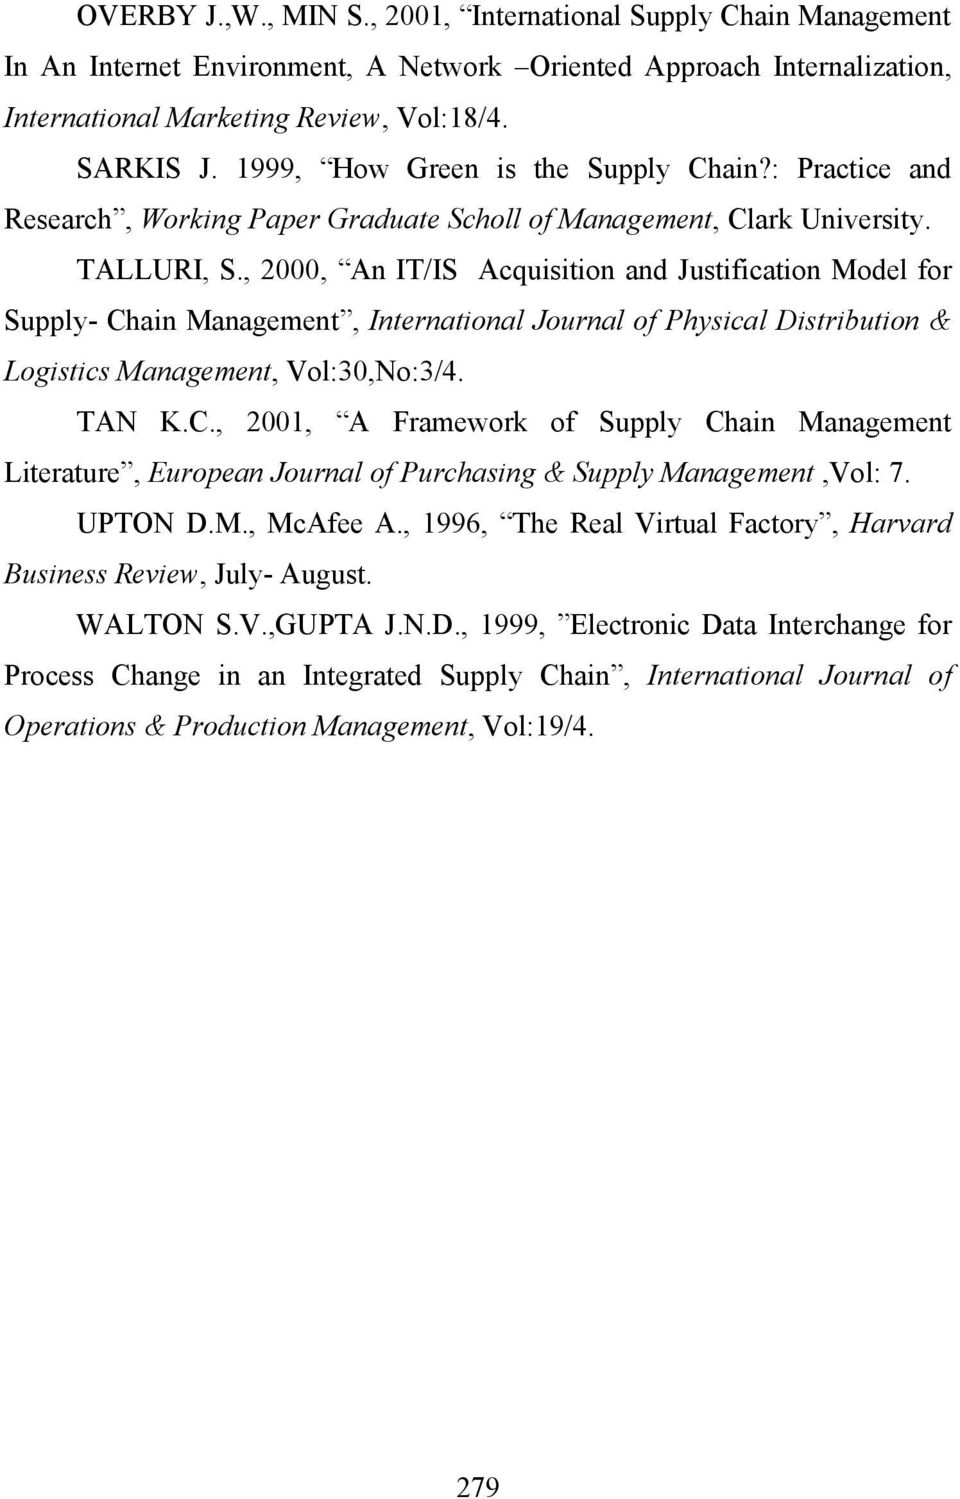 , 2000, An IT/IS Acquisition and Justification Model for Supply- Chain Management, International Journal of Physical Distribution & Logistics Management, Vol:30,No:3/4. TAN K.C., 2001, A Framework of Supply Chain Management Literature, European Journal of Purchasing & Supply Management,Vol: 7.